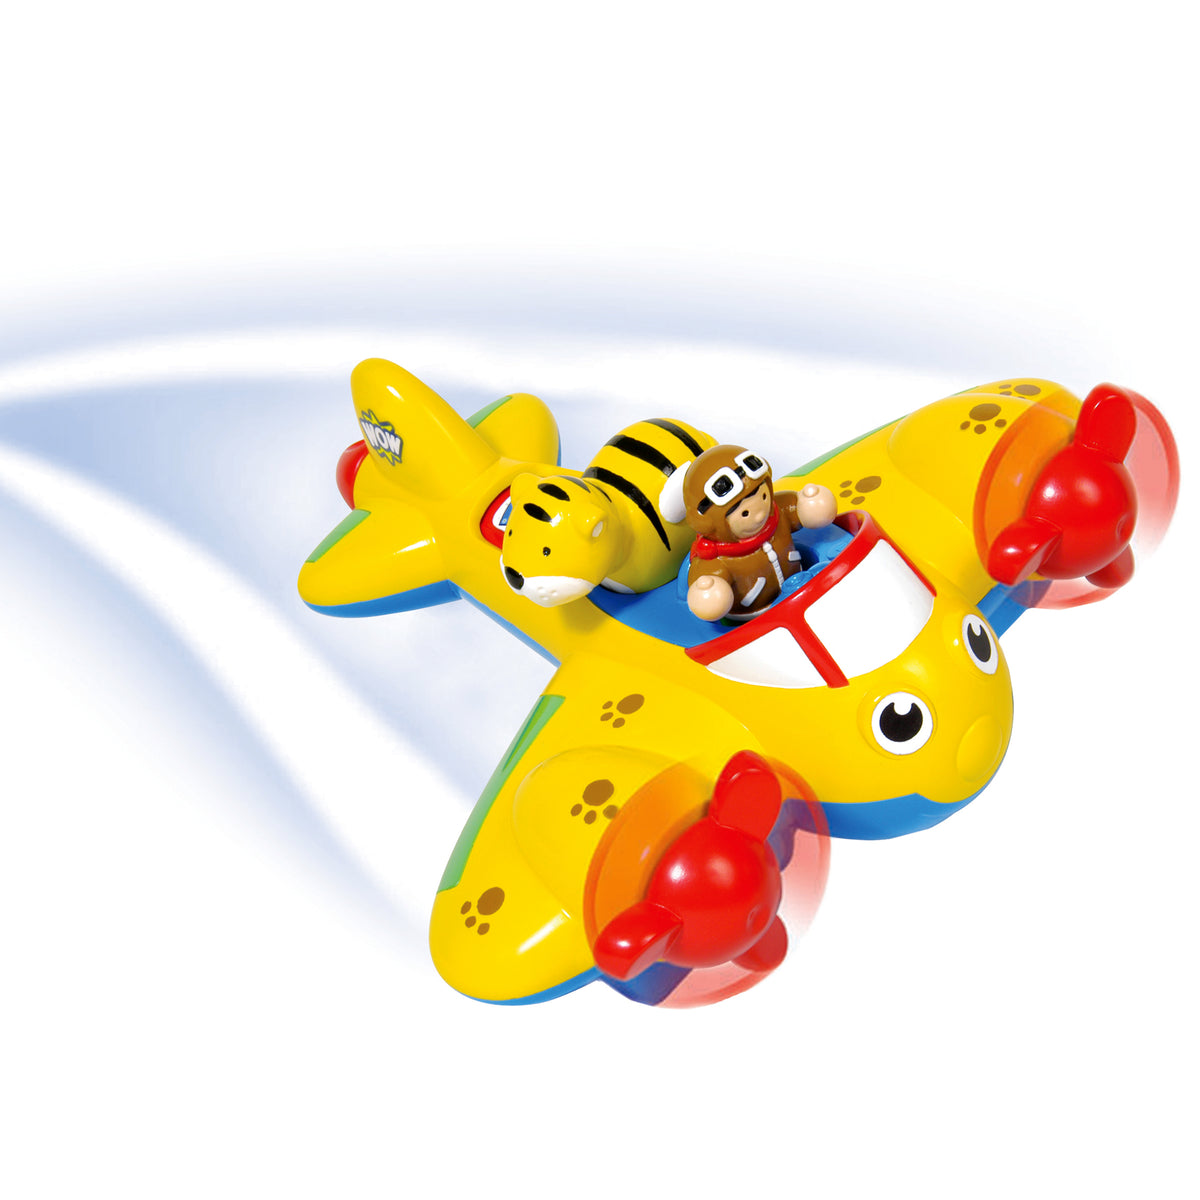 WOW Toys Johnny Jungle Plane